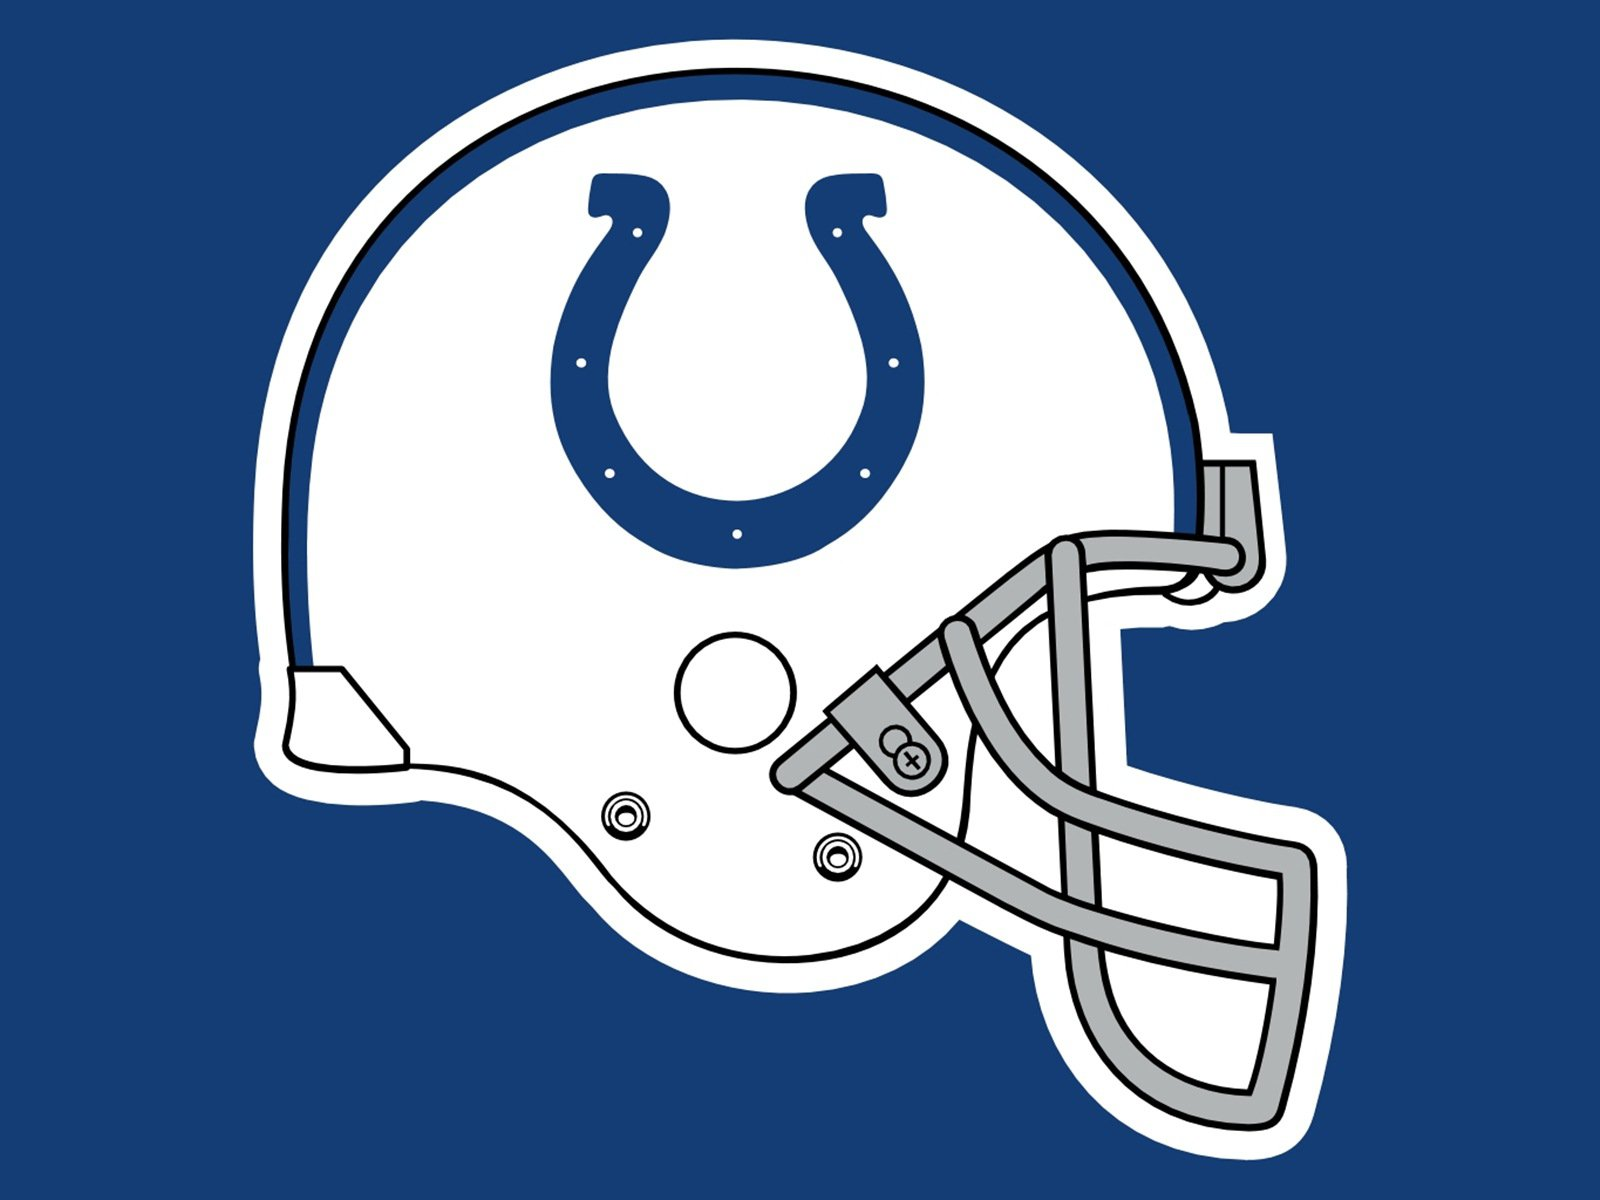 Indianapolis Colts Logo Colts Symbol Meaning History And